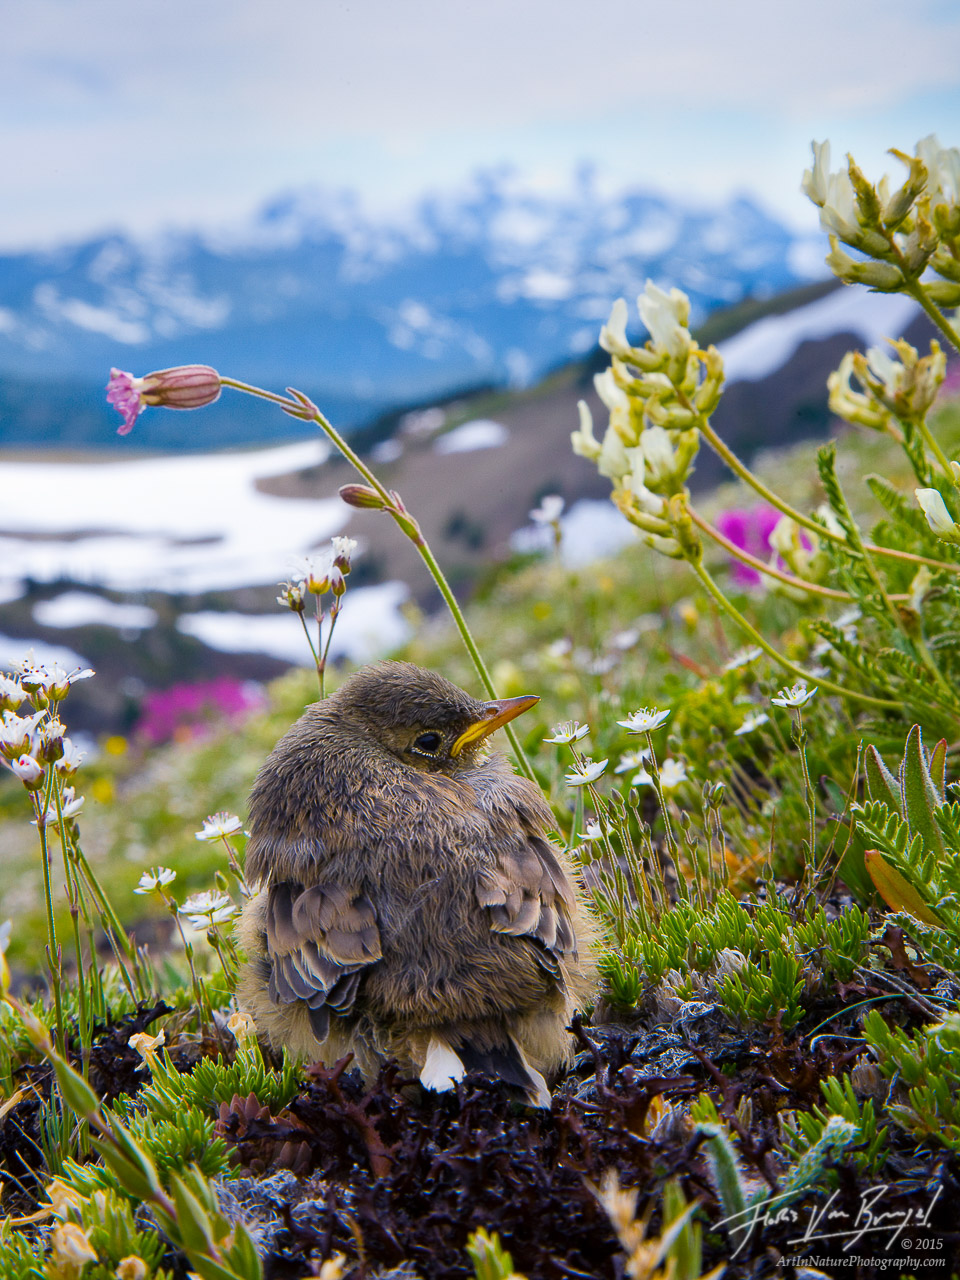 Baby Bird and Flowers, Olympic National Park, Washington, life in the alpine, hurricane ridge, american pipit, photo